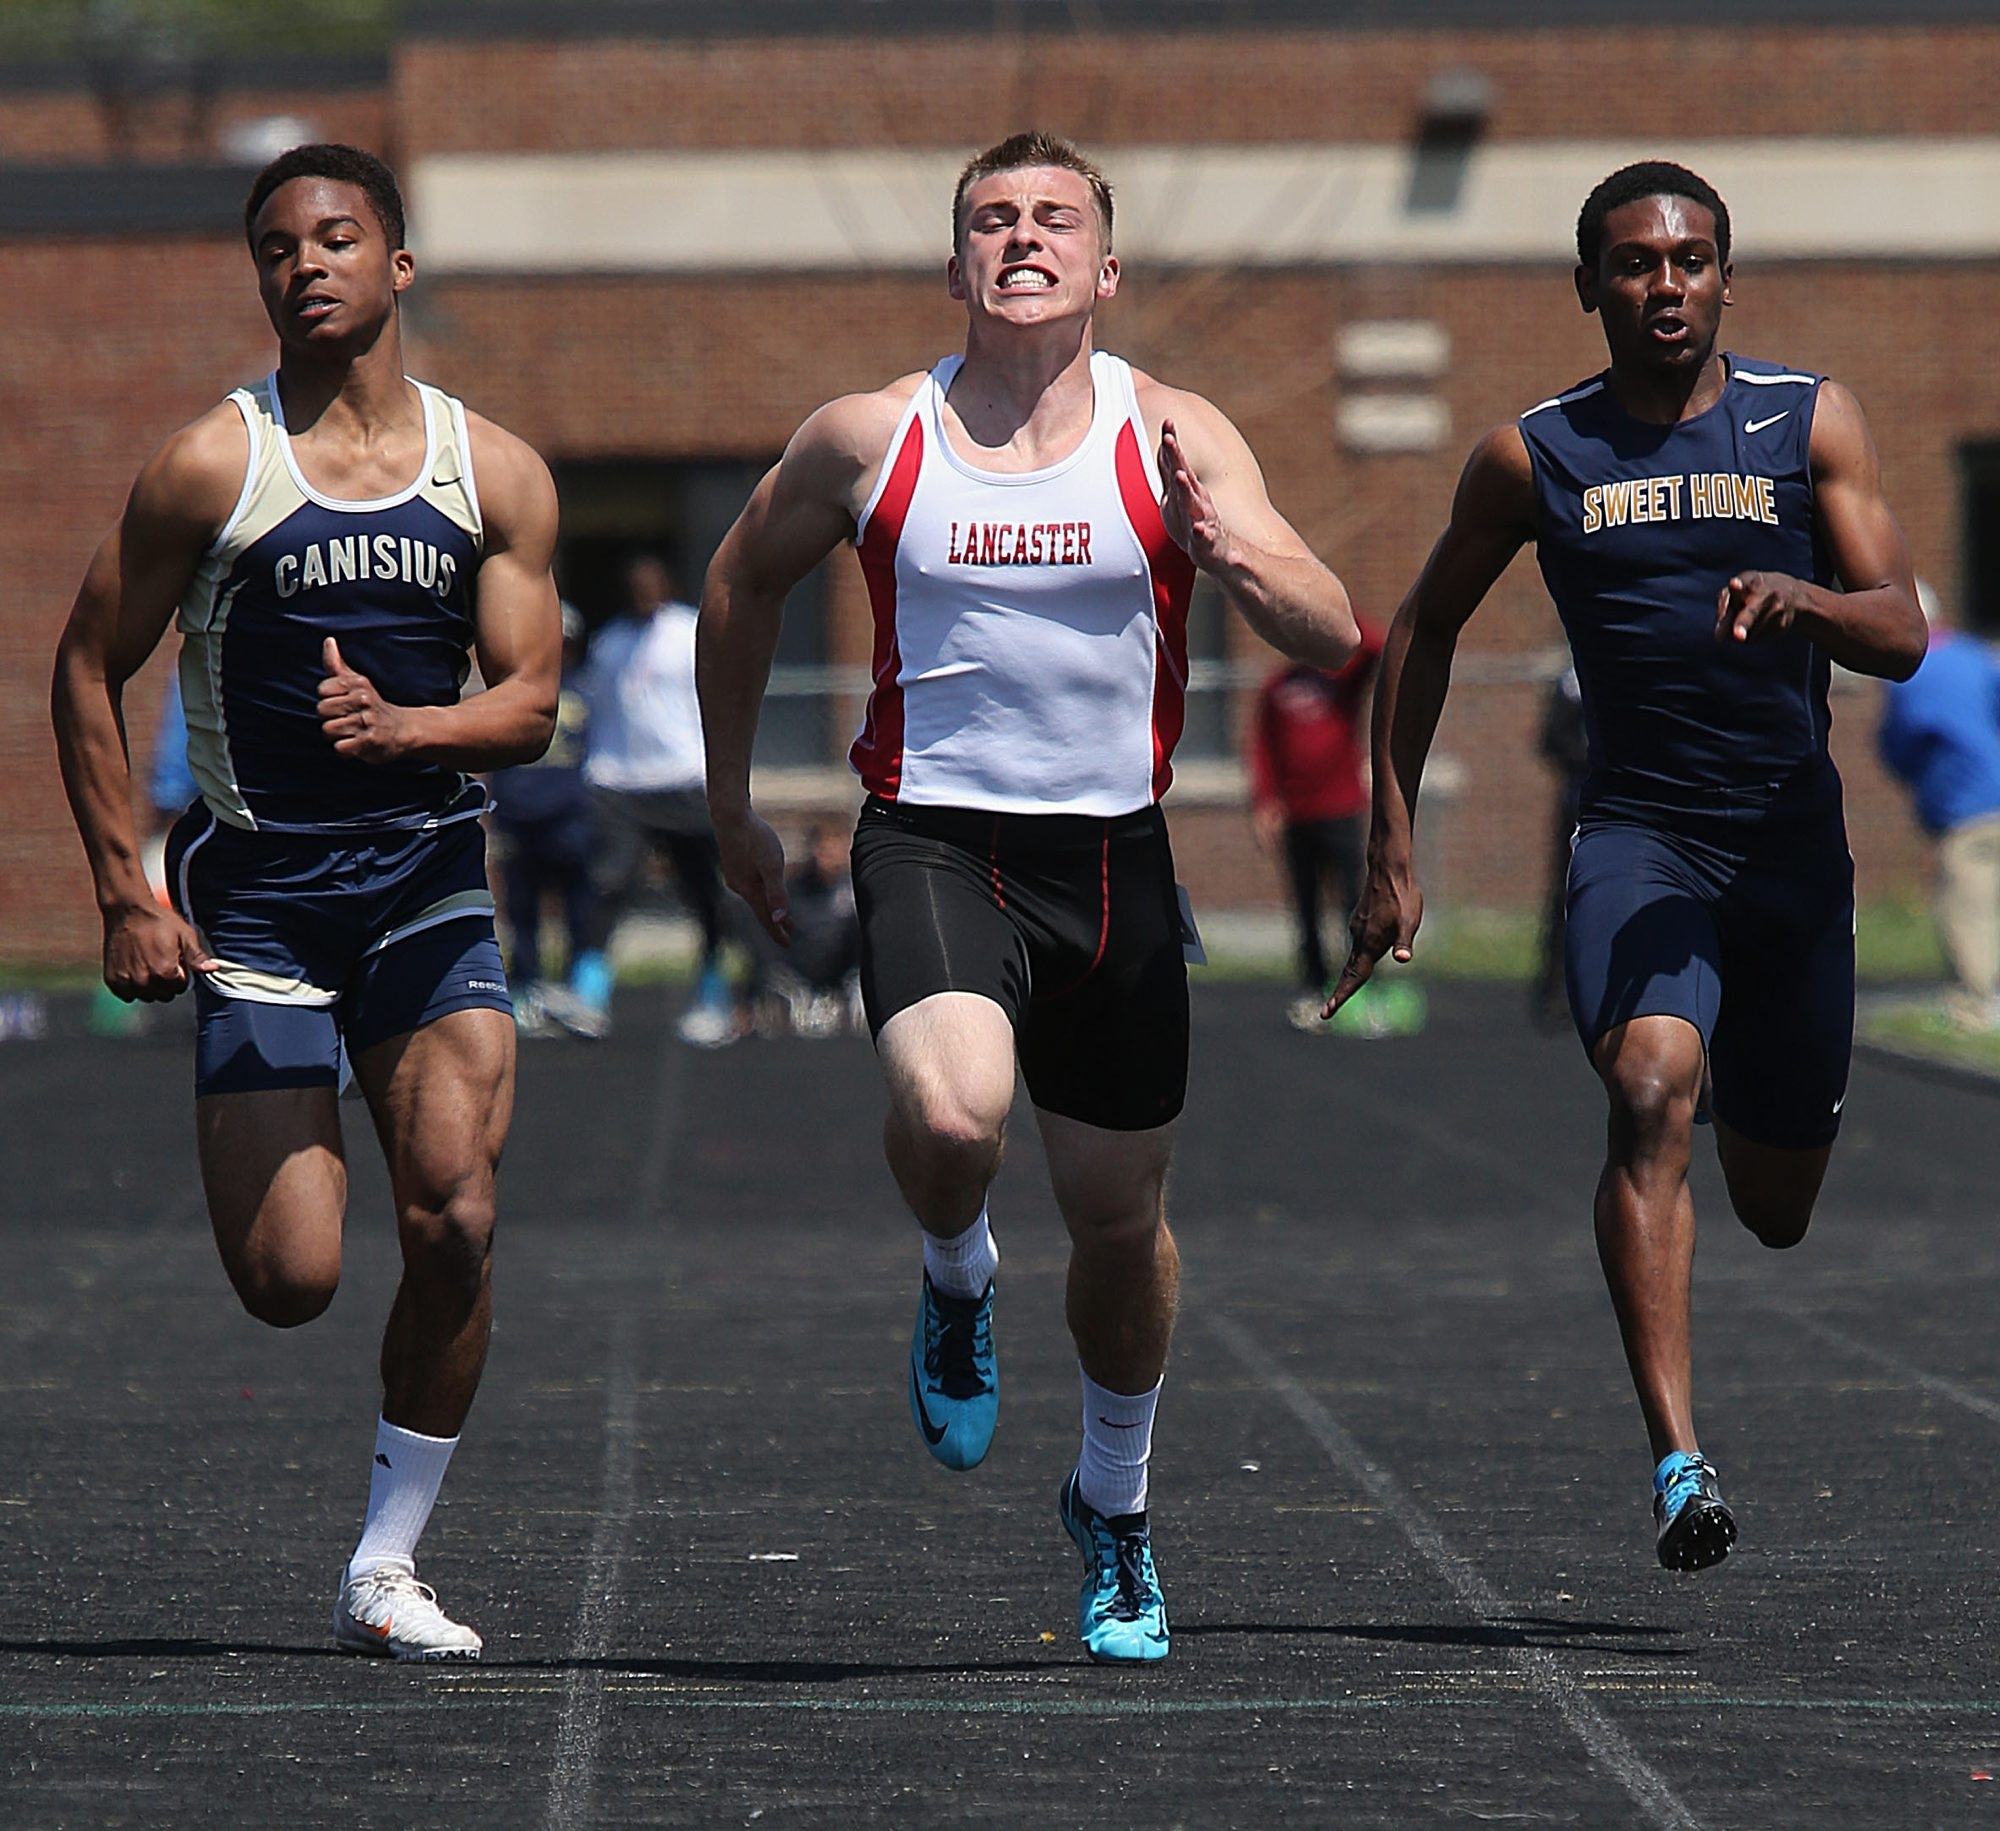 Lancaster's Mitch Fuller shares the best time in the 100 meters.